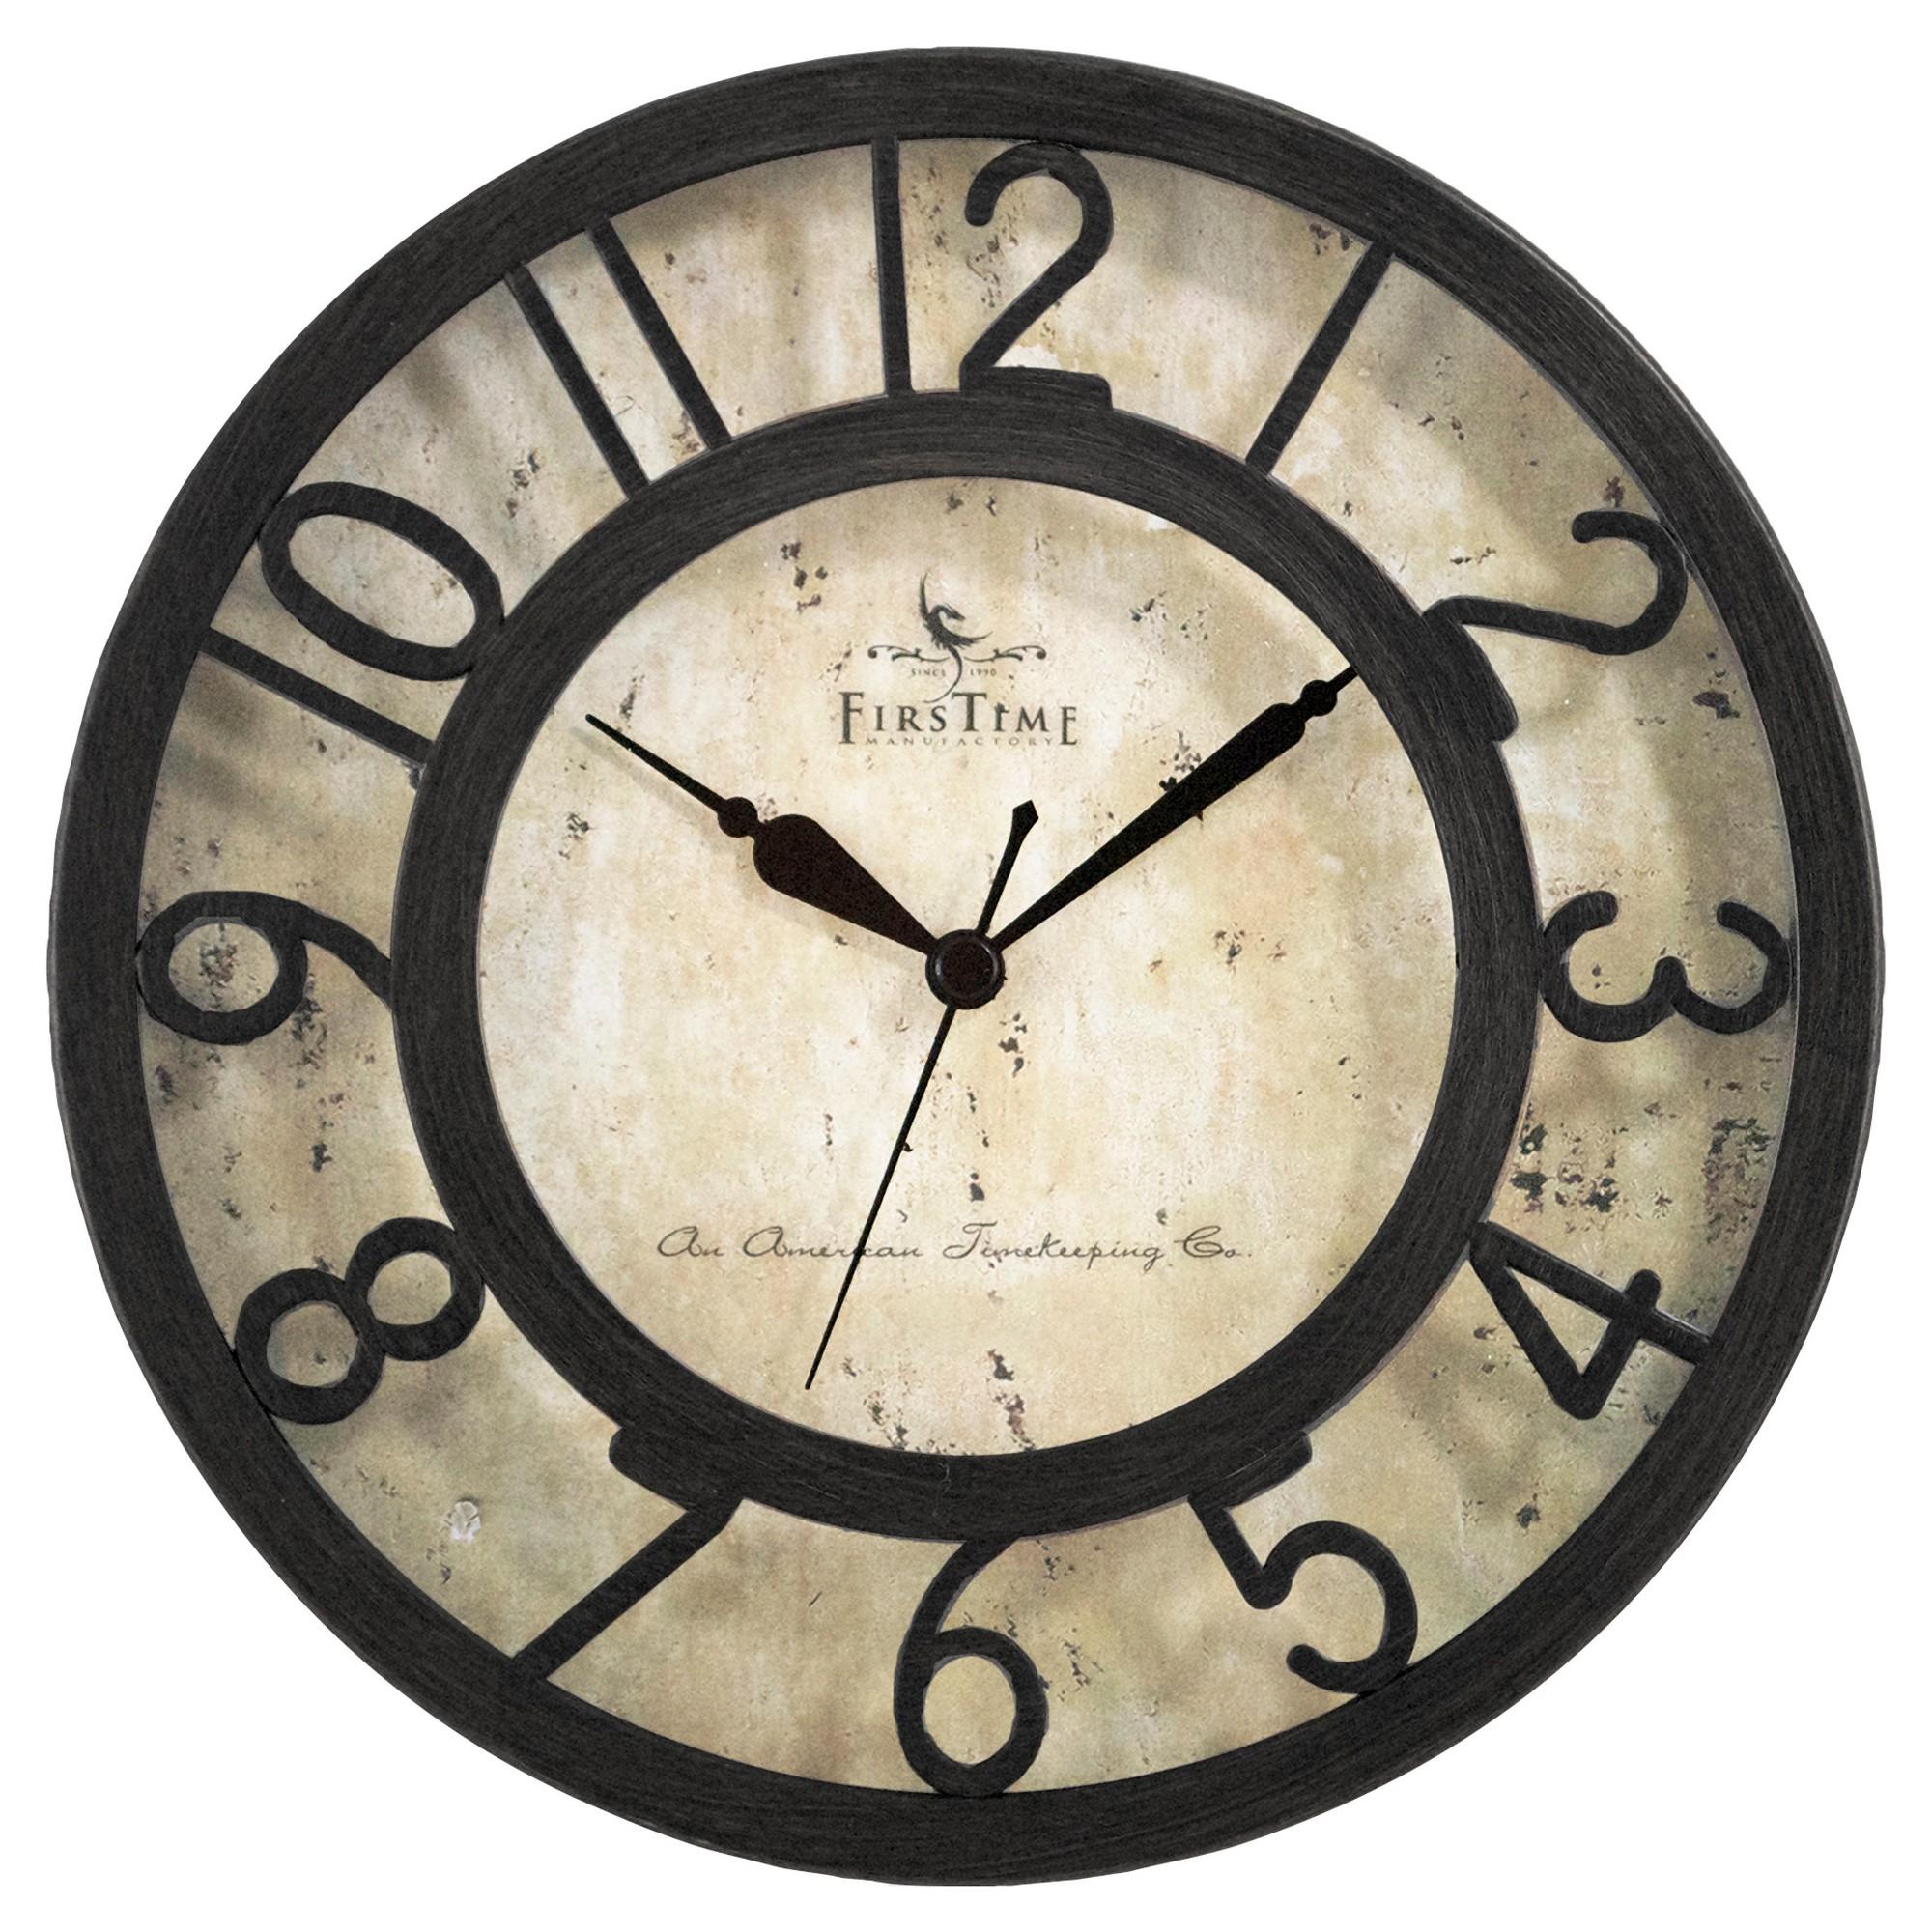 Raised Number Round Wall Clock Oil Rubbed Bronze 8 Firstime Wall Clock Clock Round Wall Clocks Oil rubbed bronze wall clock